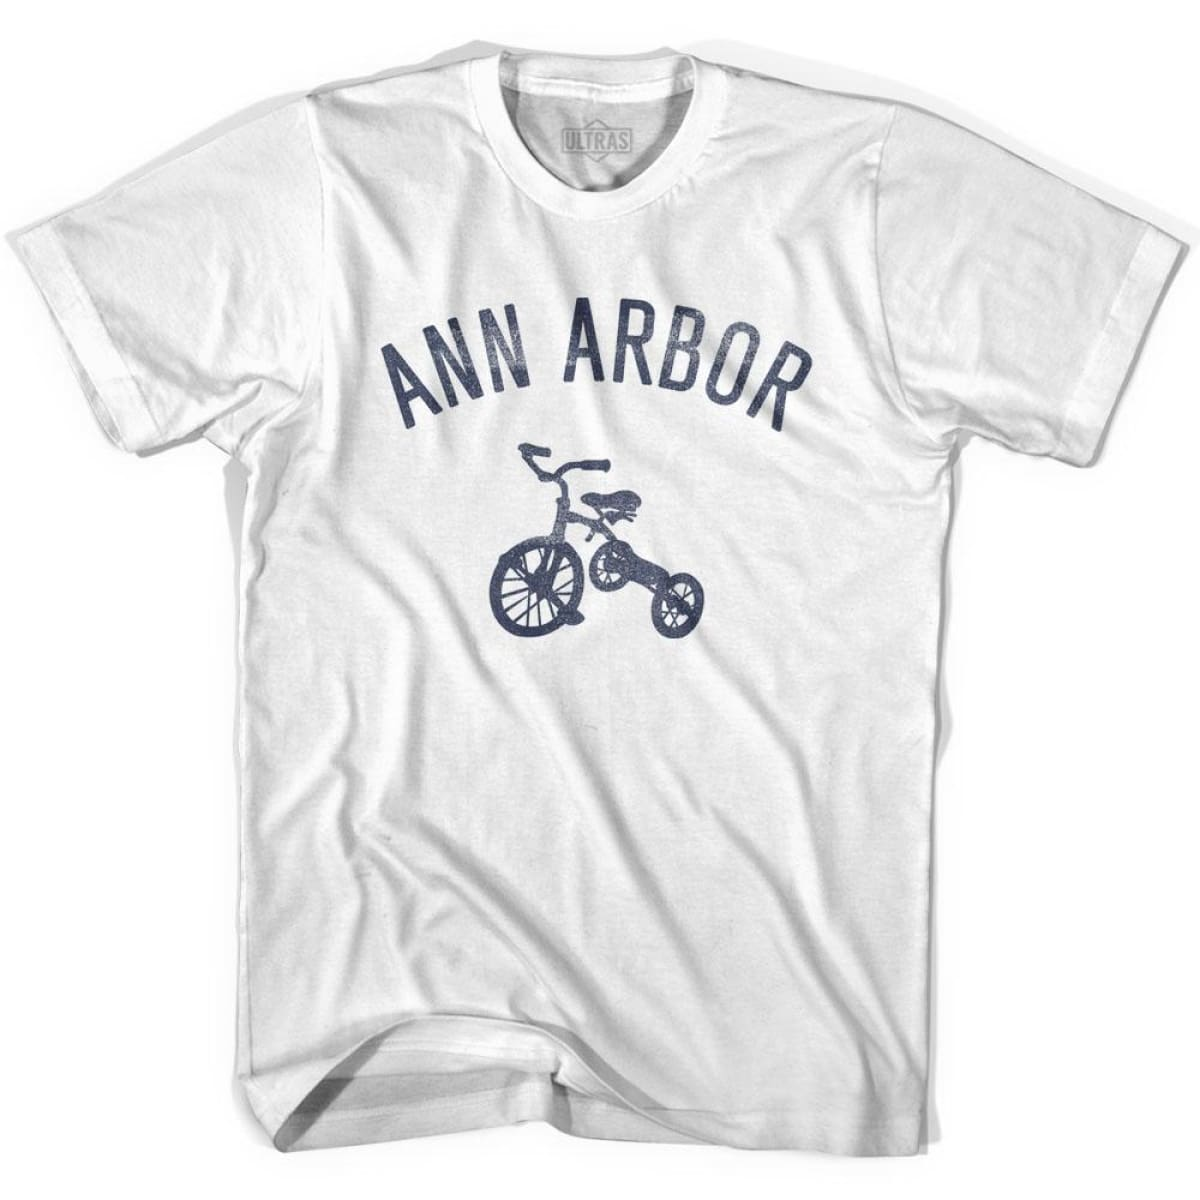 Ann Arbor City Tricycle Youth Cotton T-shirt - Tricycle City